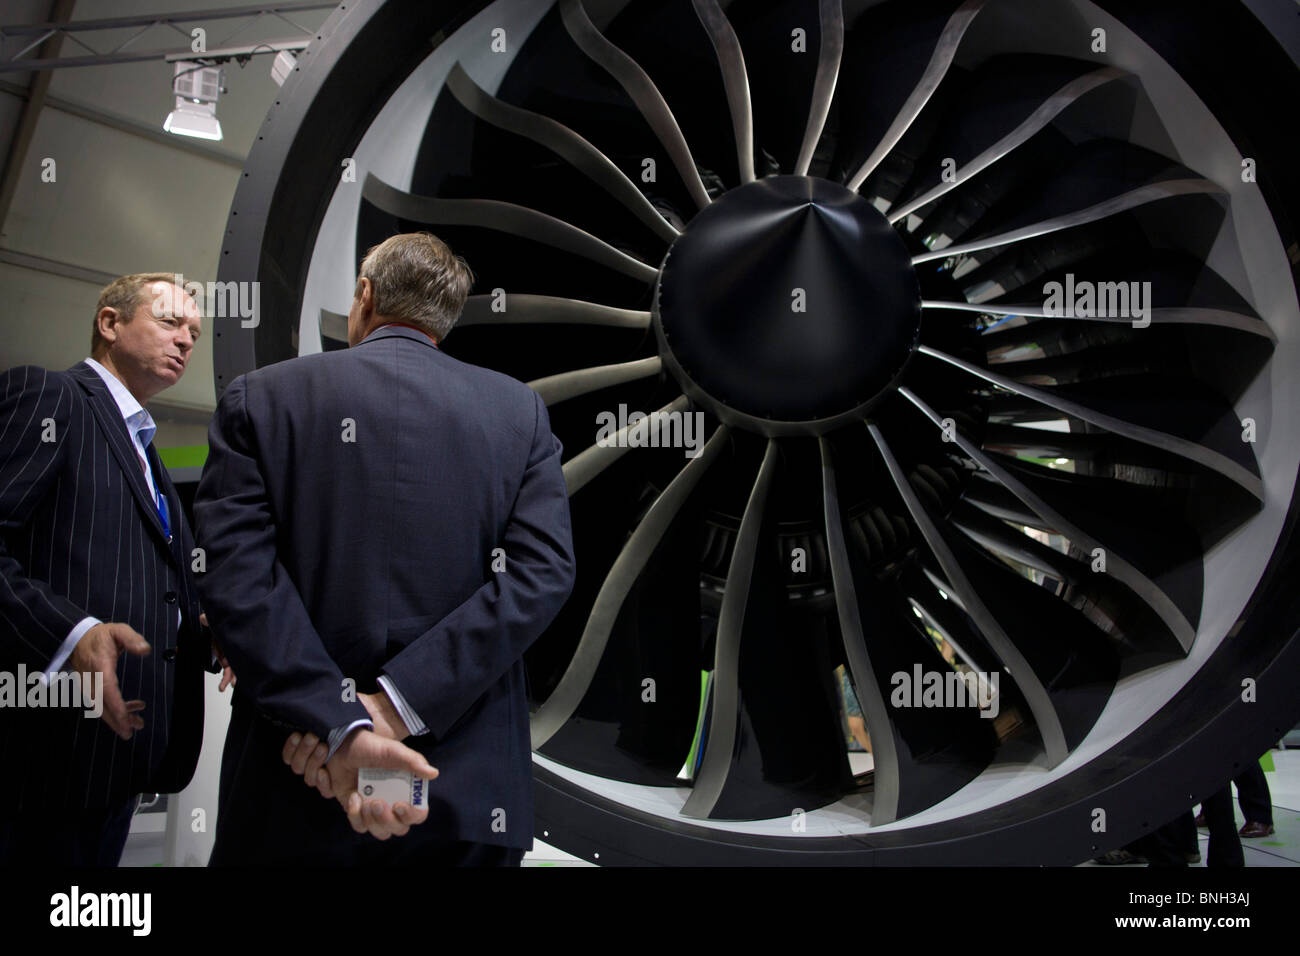 An employee and potential buyer discuss potential business deals at the General Electric (GE) exhibition stand. - Stock Image